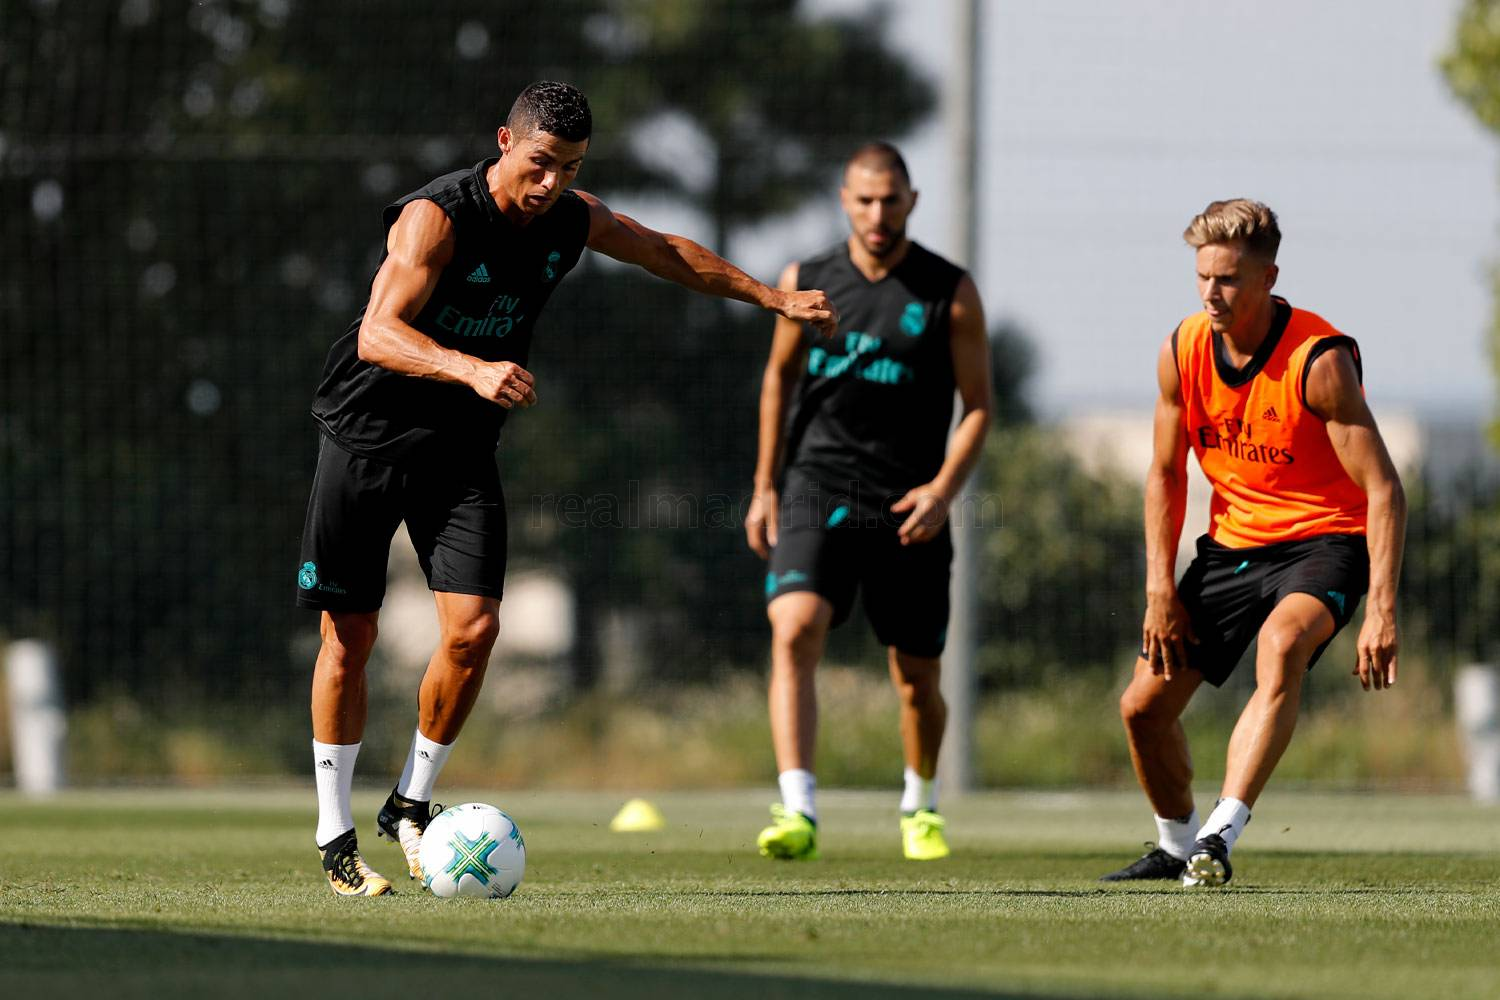 Real Madrid - Entrenamiento del Real Madrid - 05-08-2017